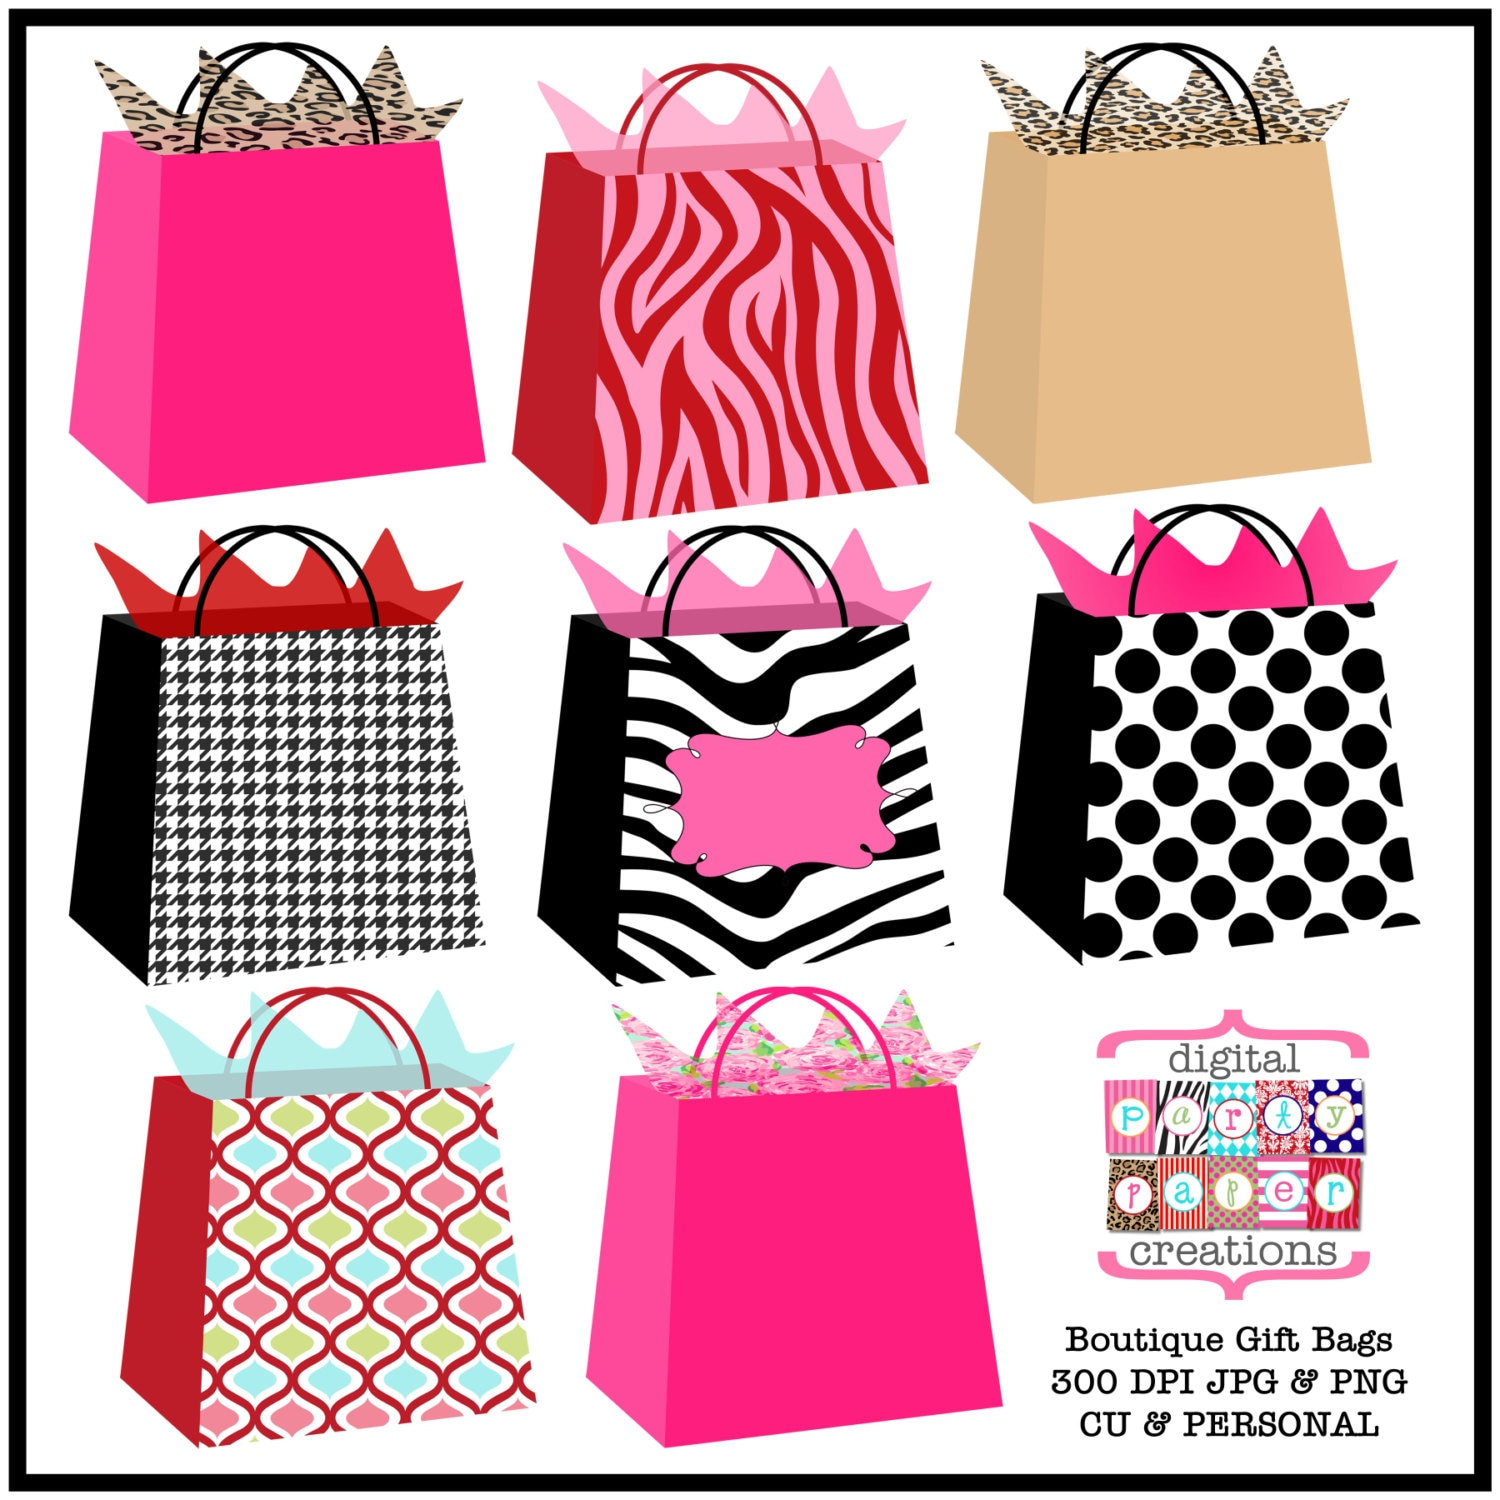 Boutique gift bags clipart printable bag illustration